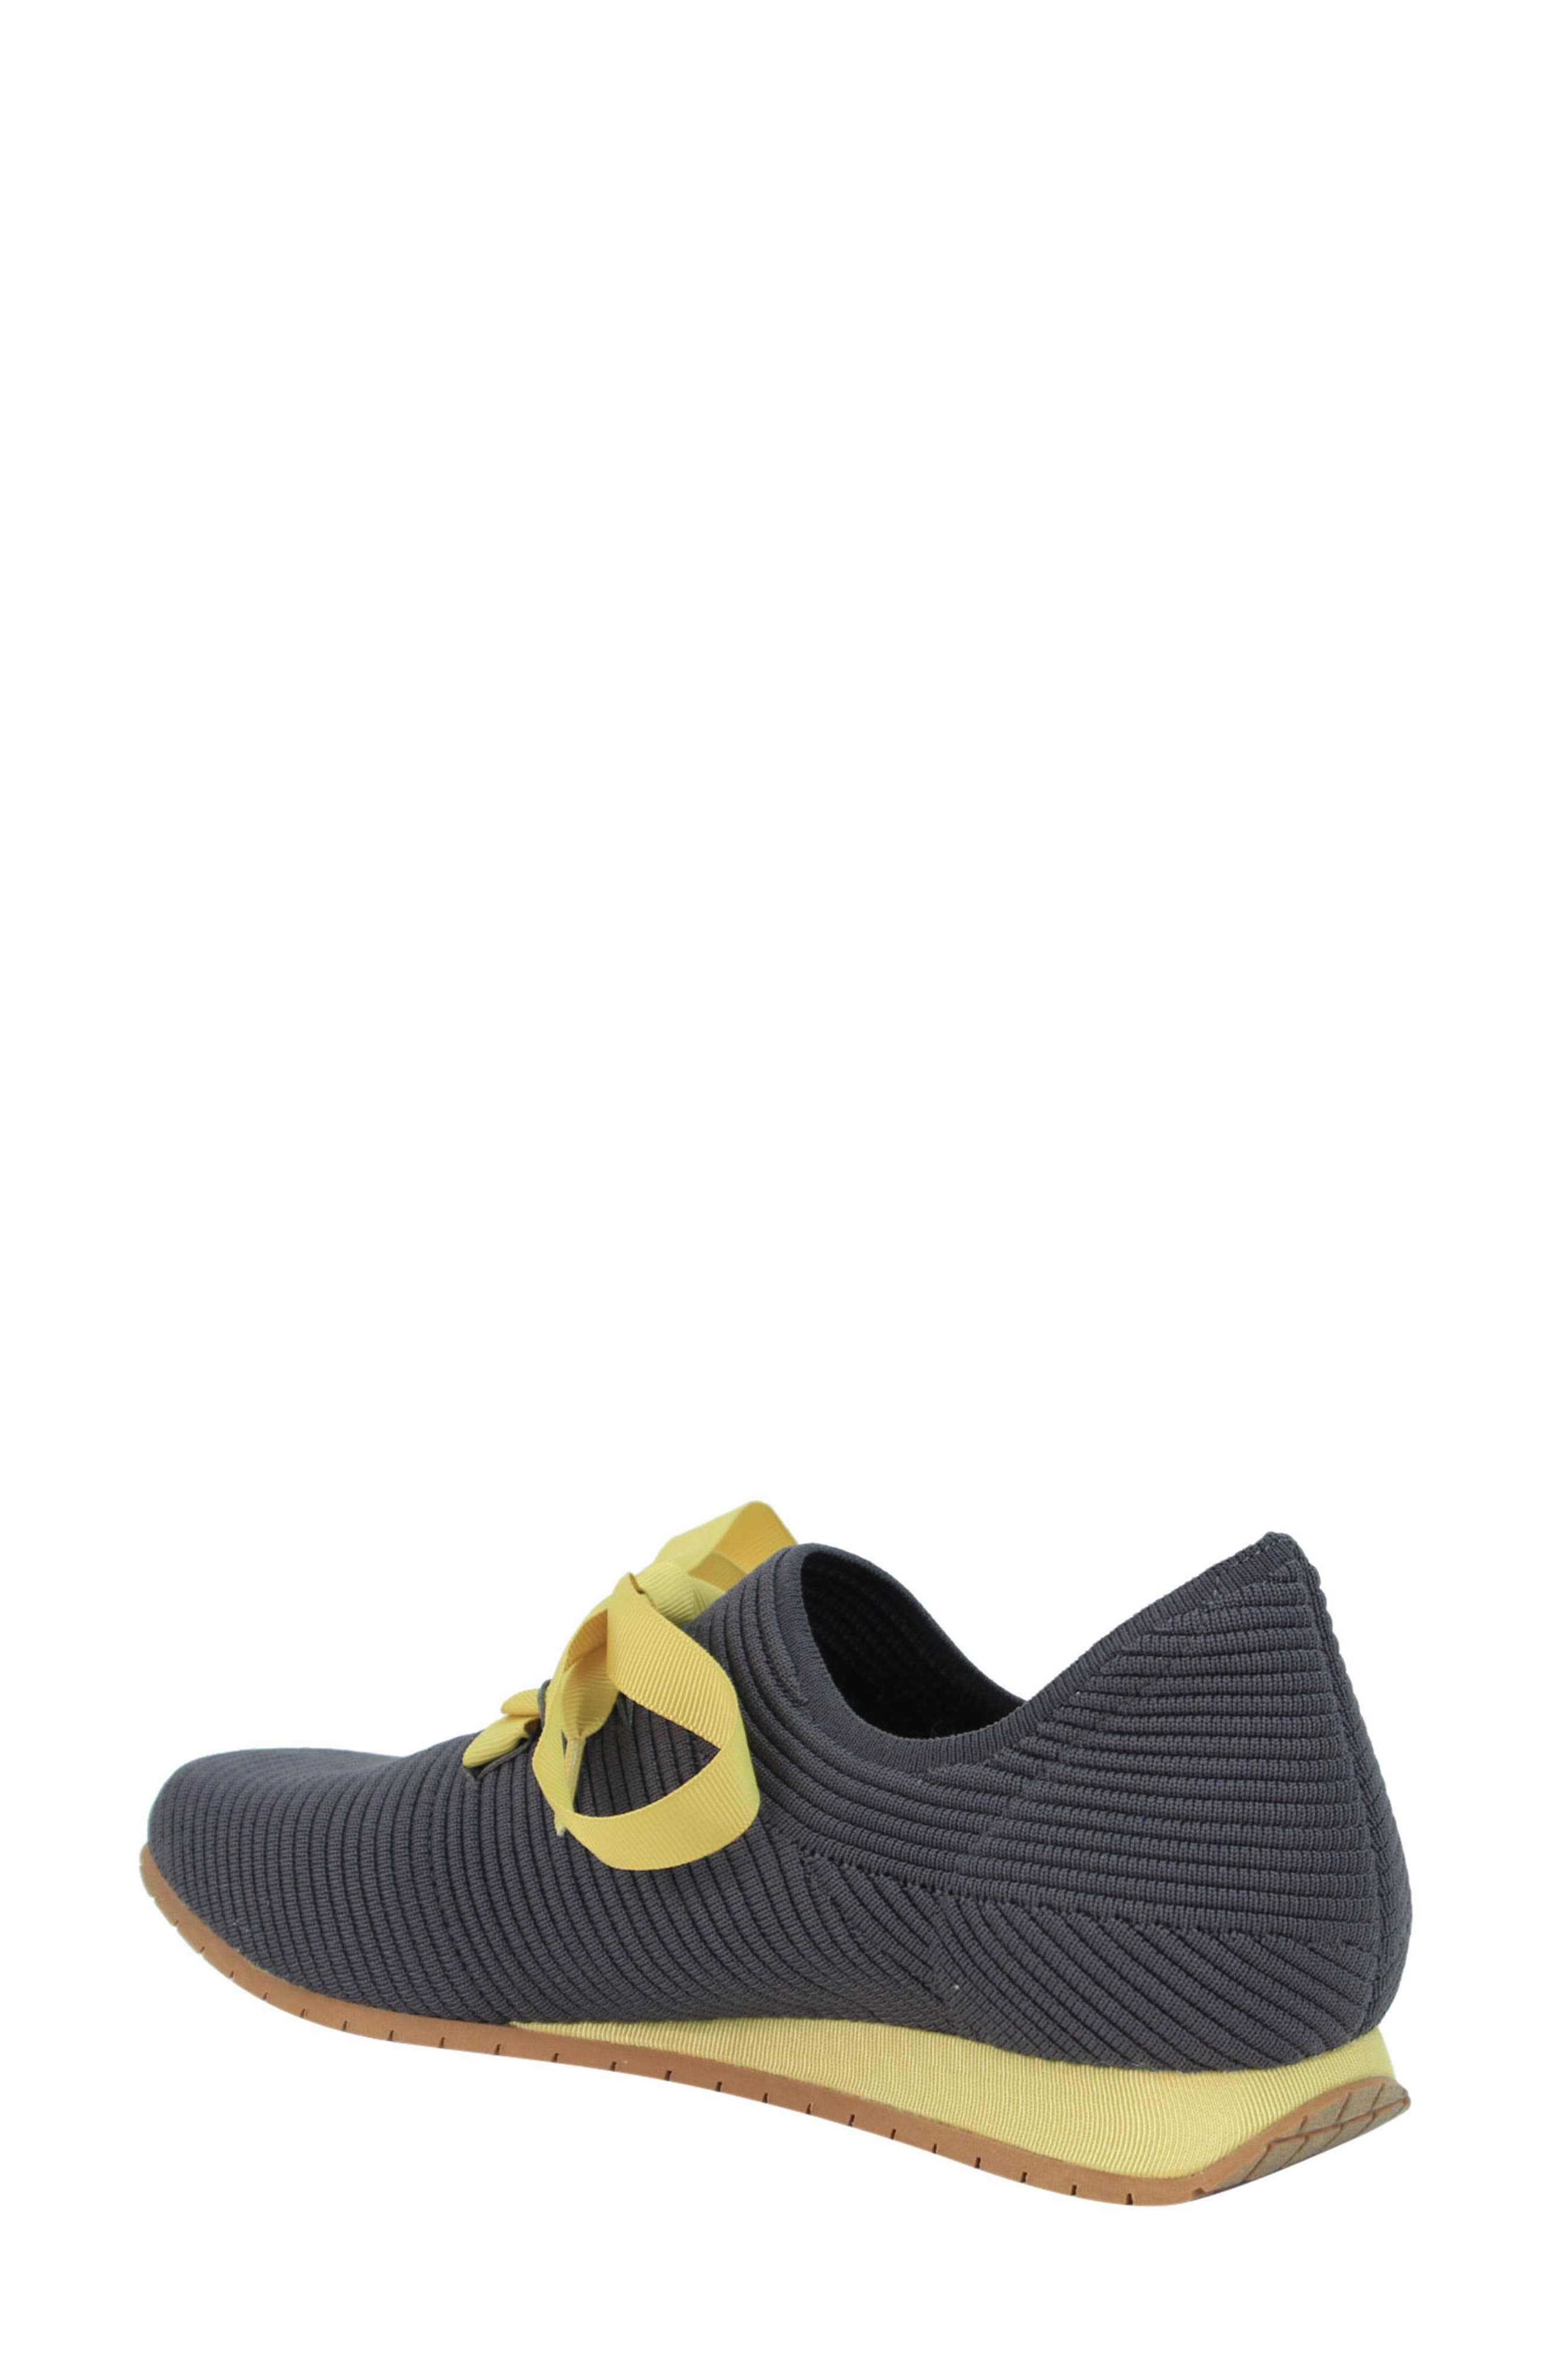 L'AMOUR DES PIEDS, Taimah Sneaker, Alternate thumbnail 2, color, DARK GREY/ YELLOW FABRIC